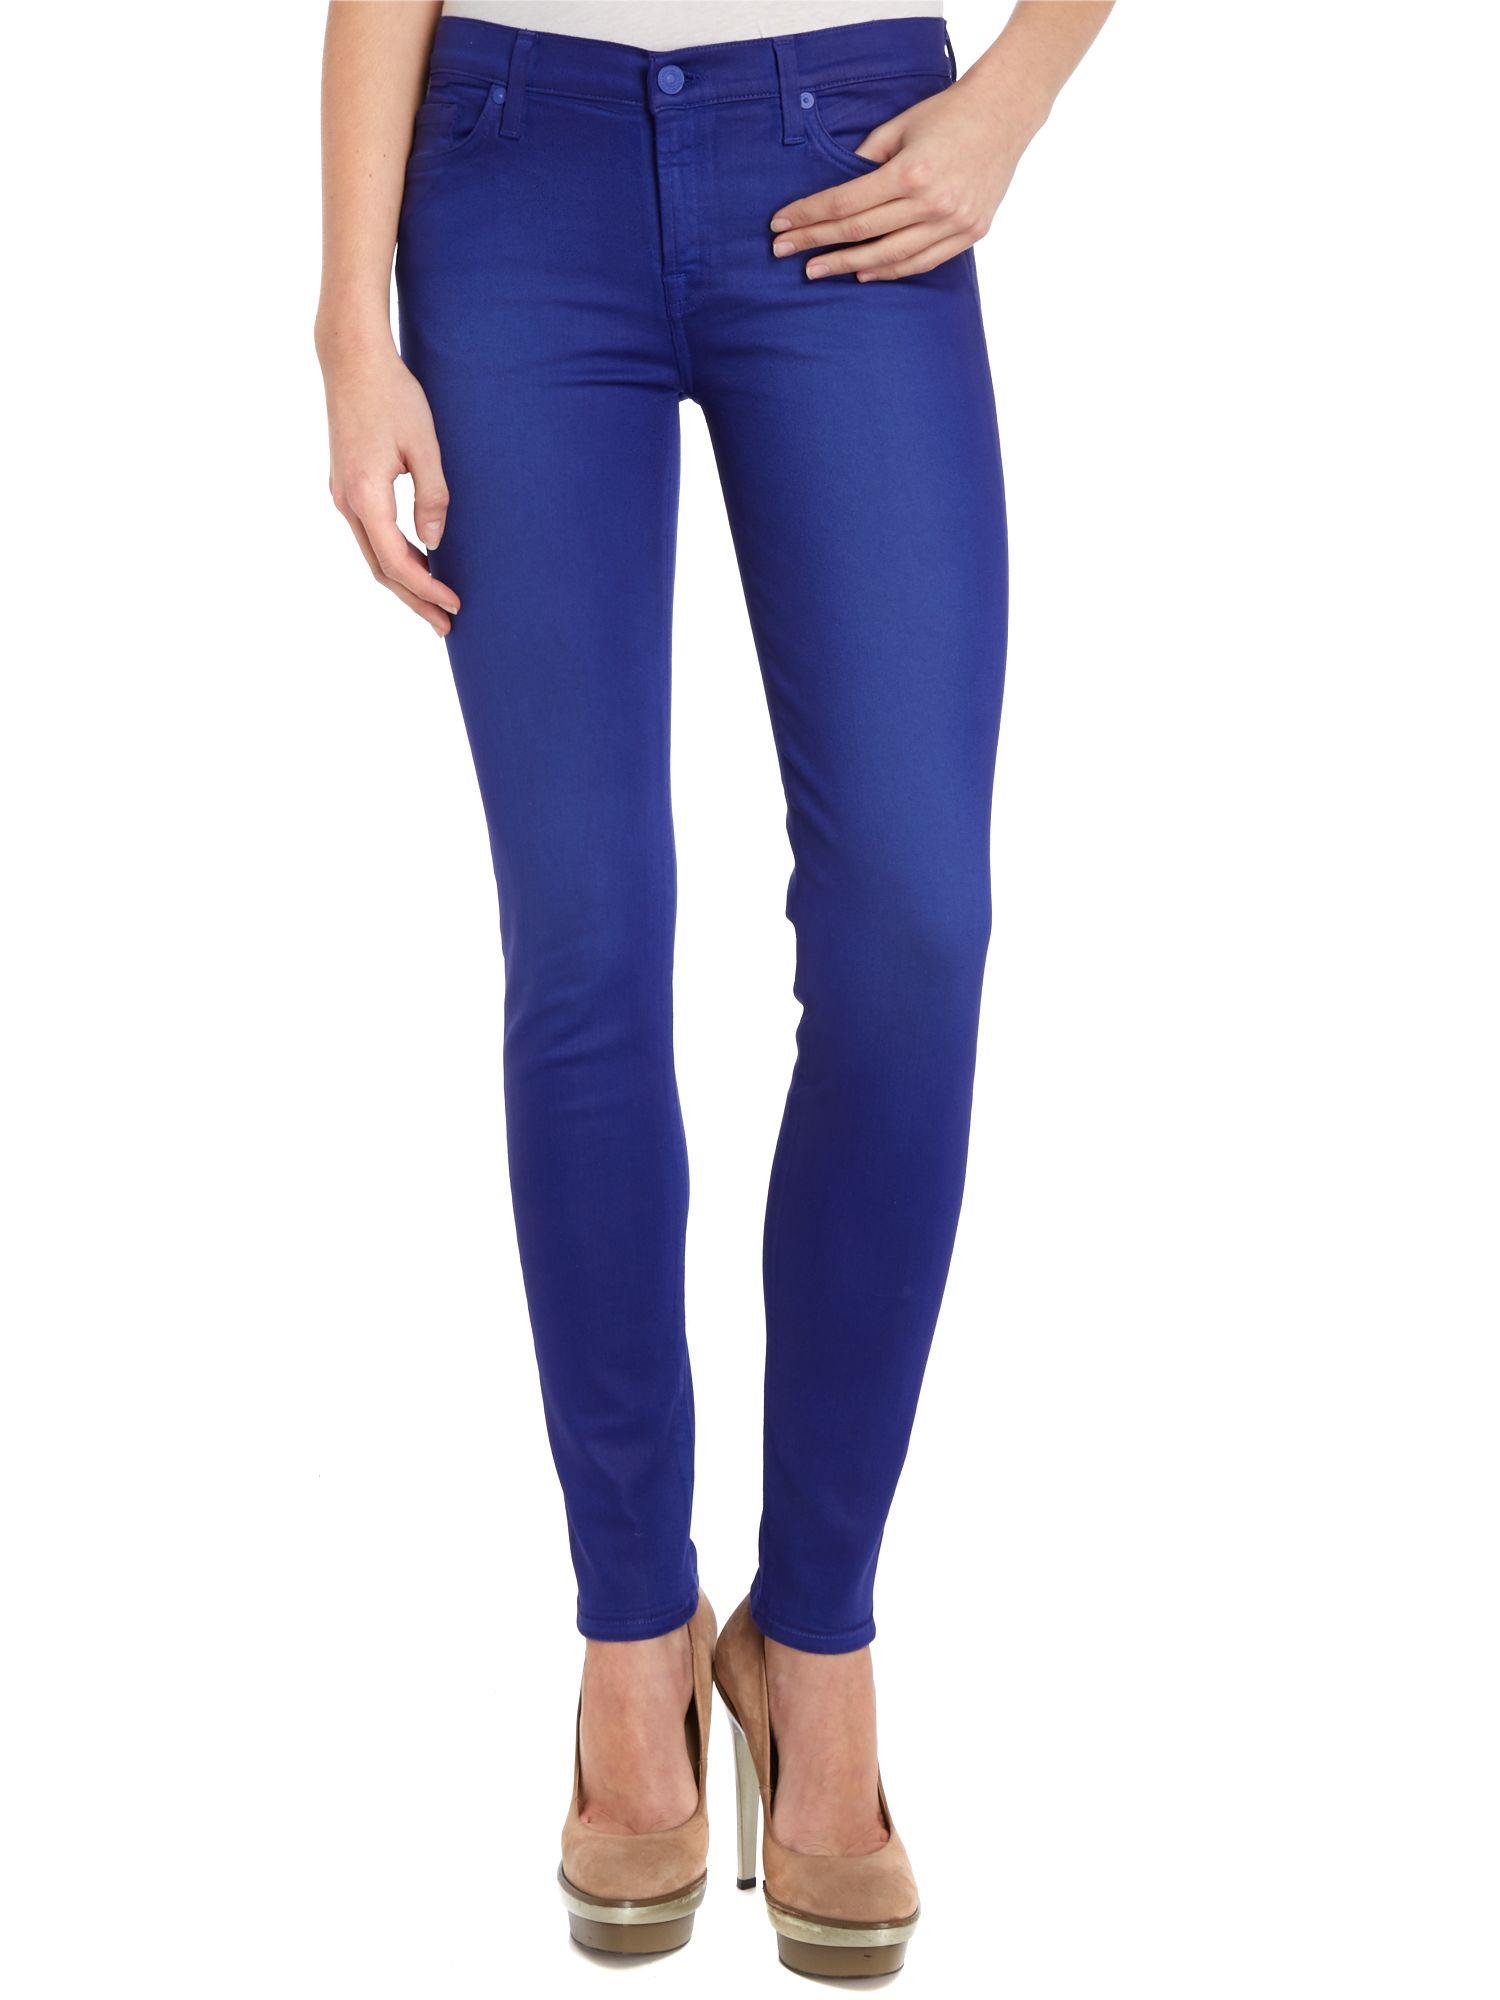 7 for all mankind The Skinny Coated Jeans in Royal Blue in Blue | Lyst